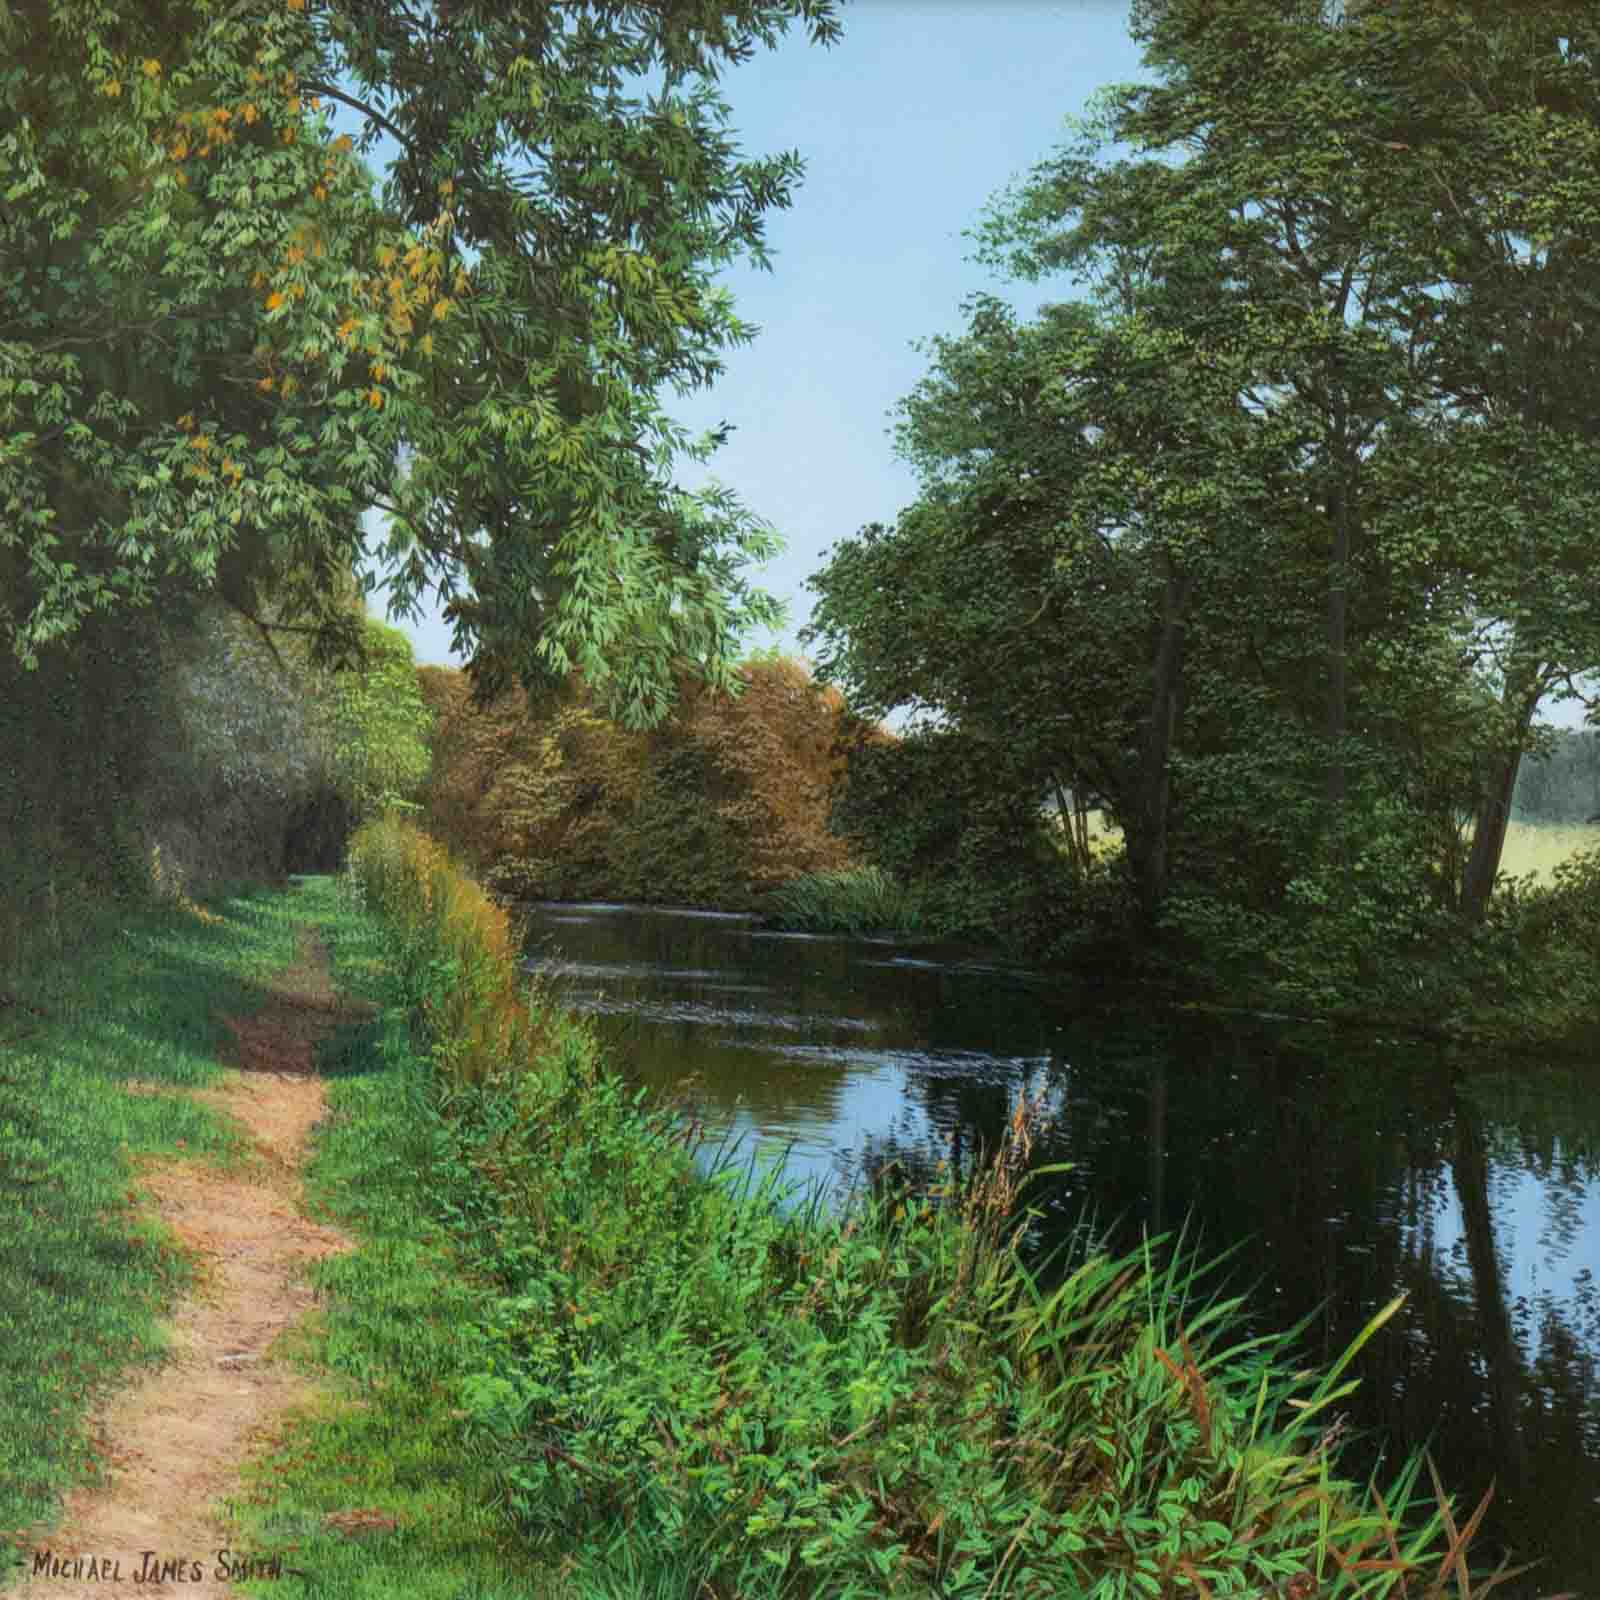 The River Chelmer, Michael James Smith